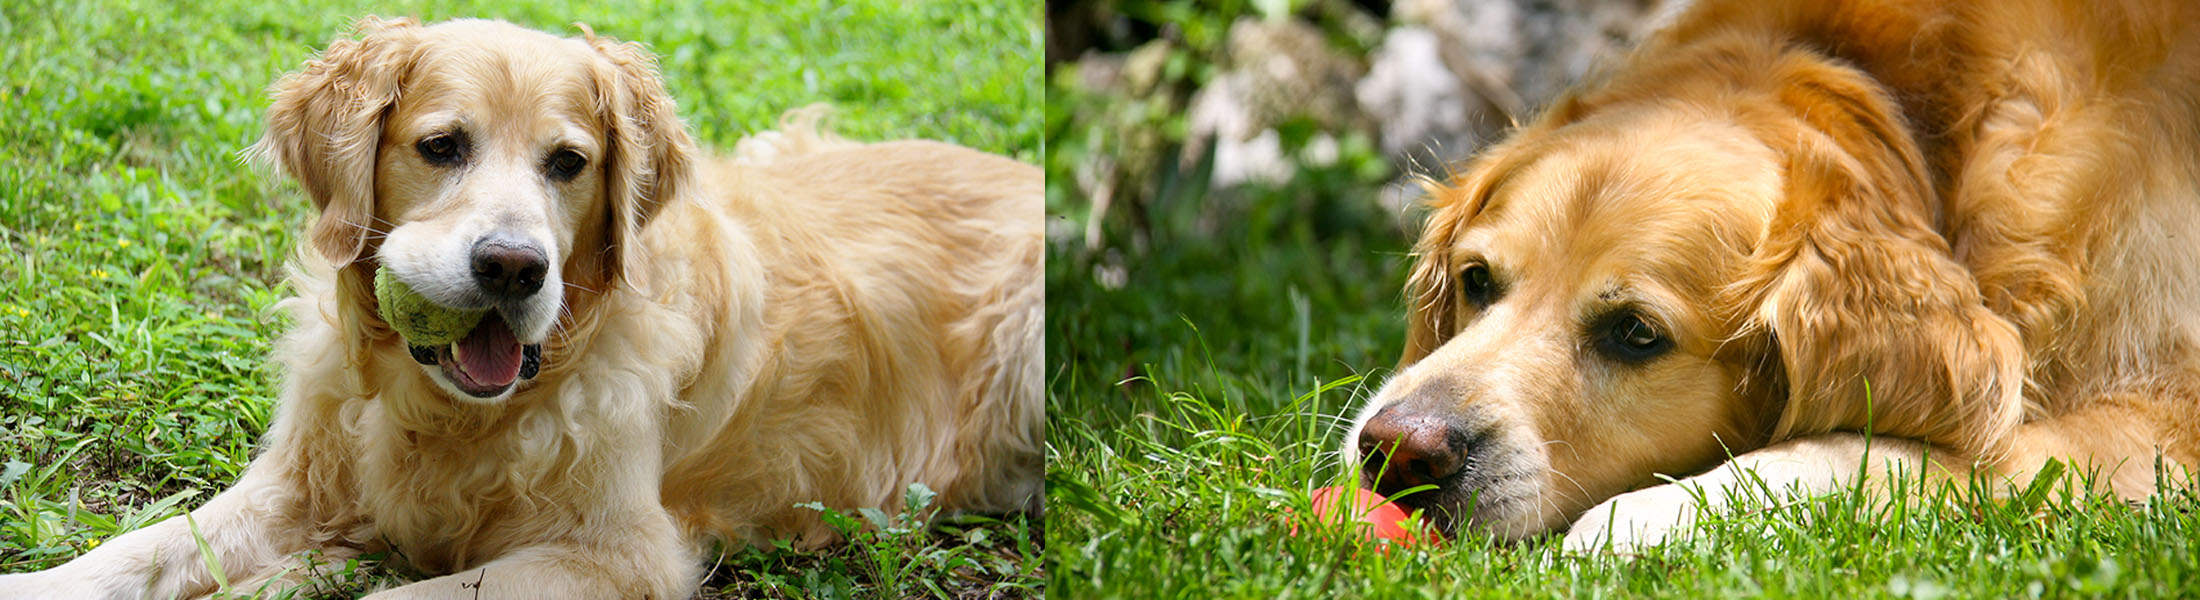 Bo enjoys being outside in the grass with his toys.